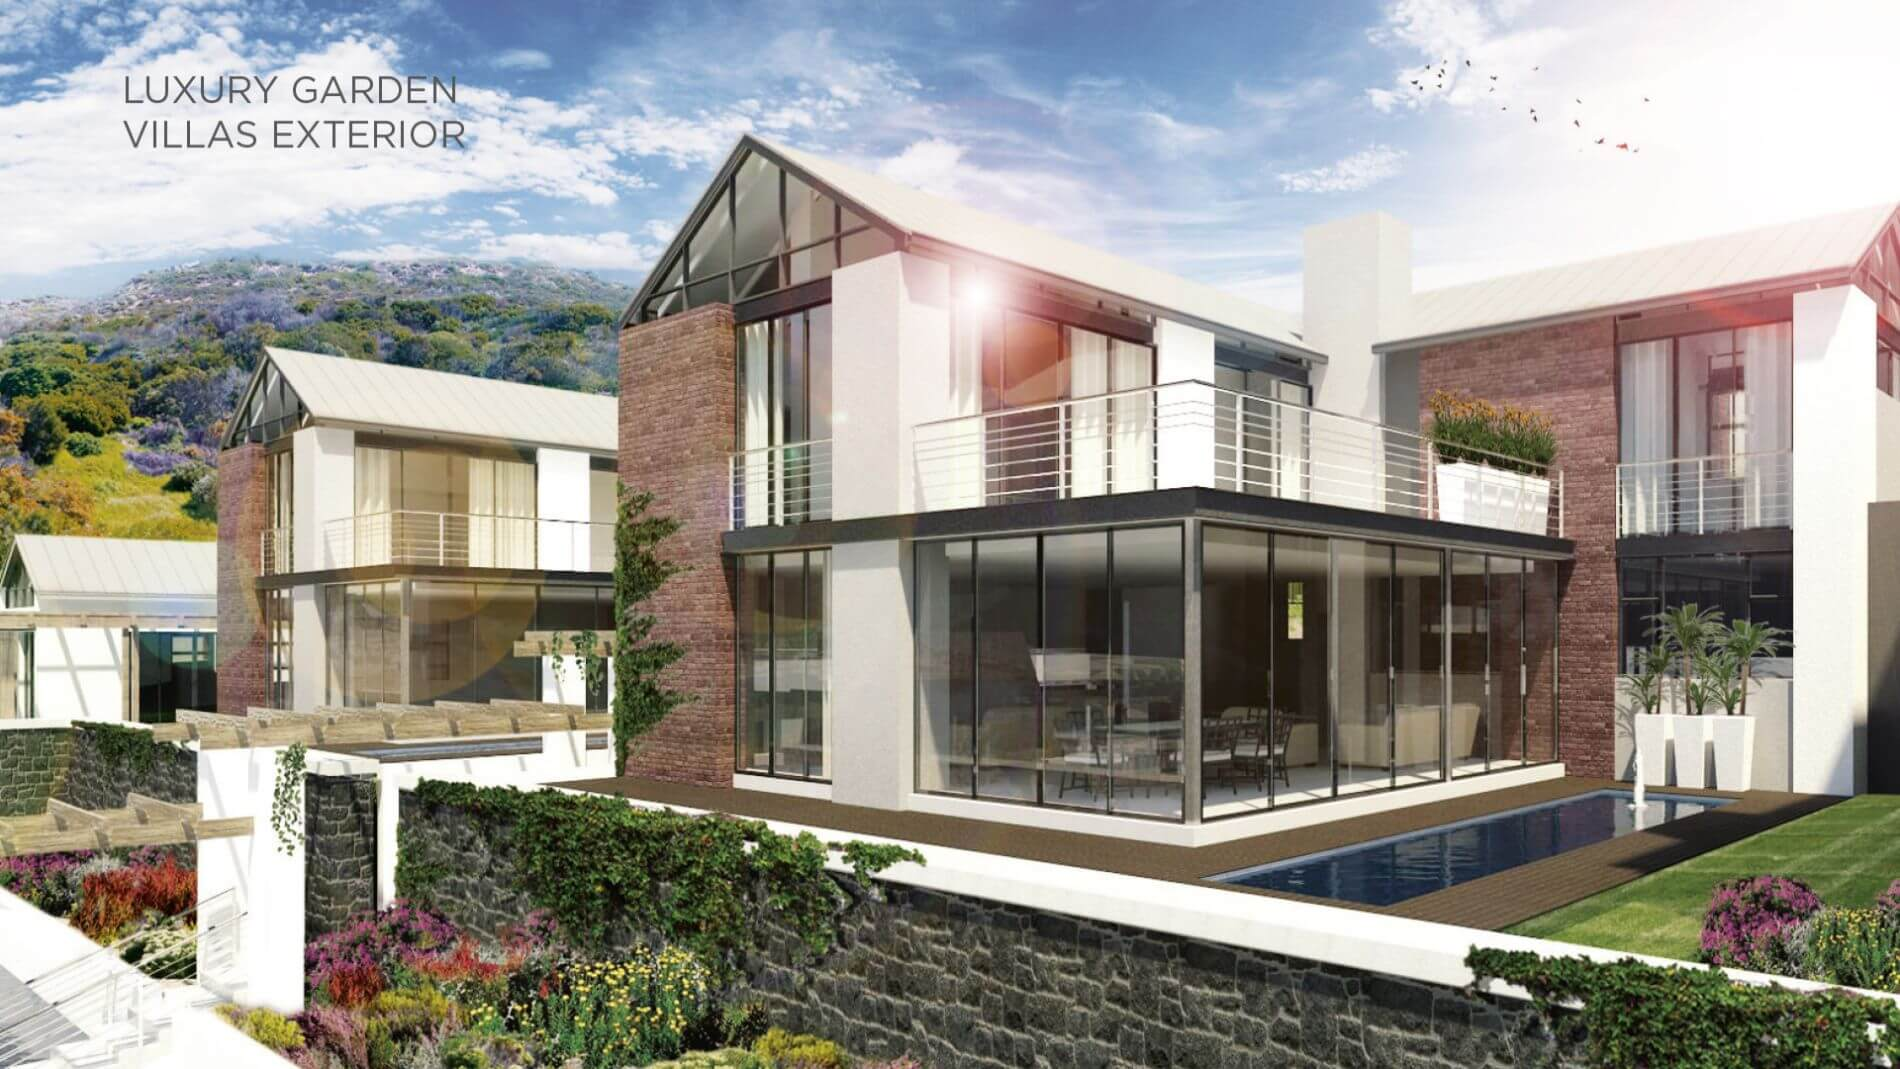 9 Luxury Garden Villas Exterior 1 1 1 - Luxury, style in Simon's Town